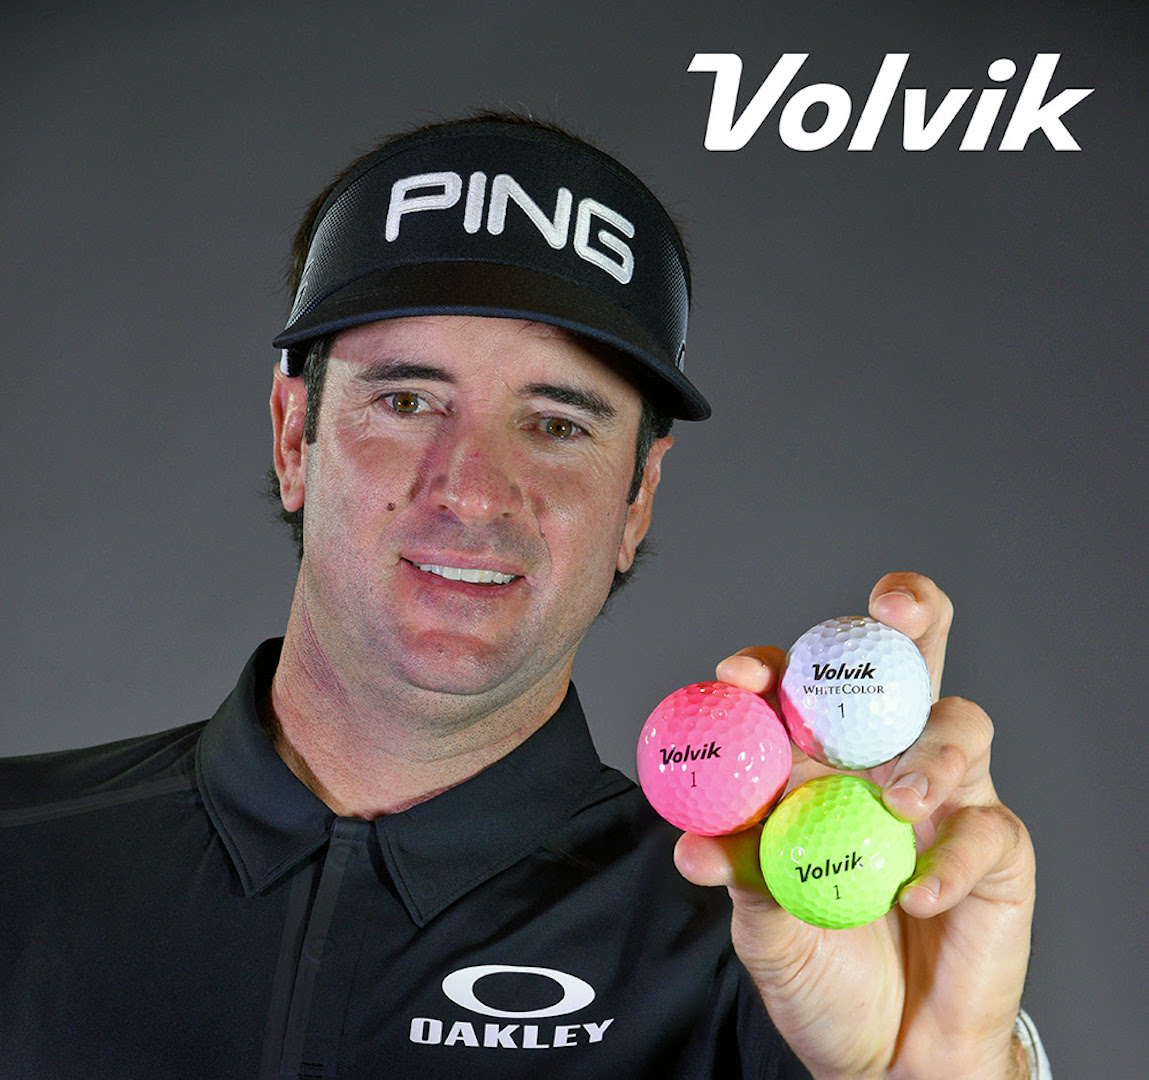 Volvik come out swinging